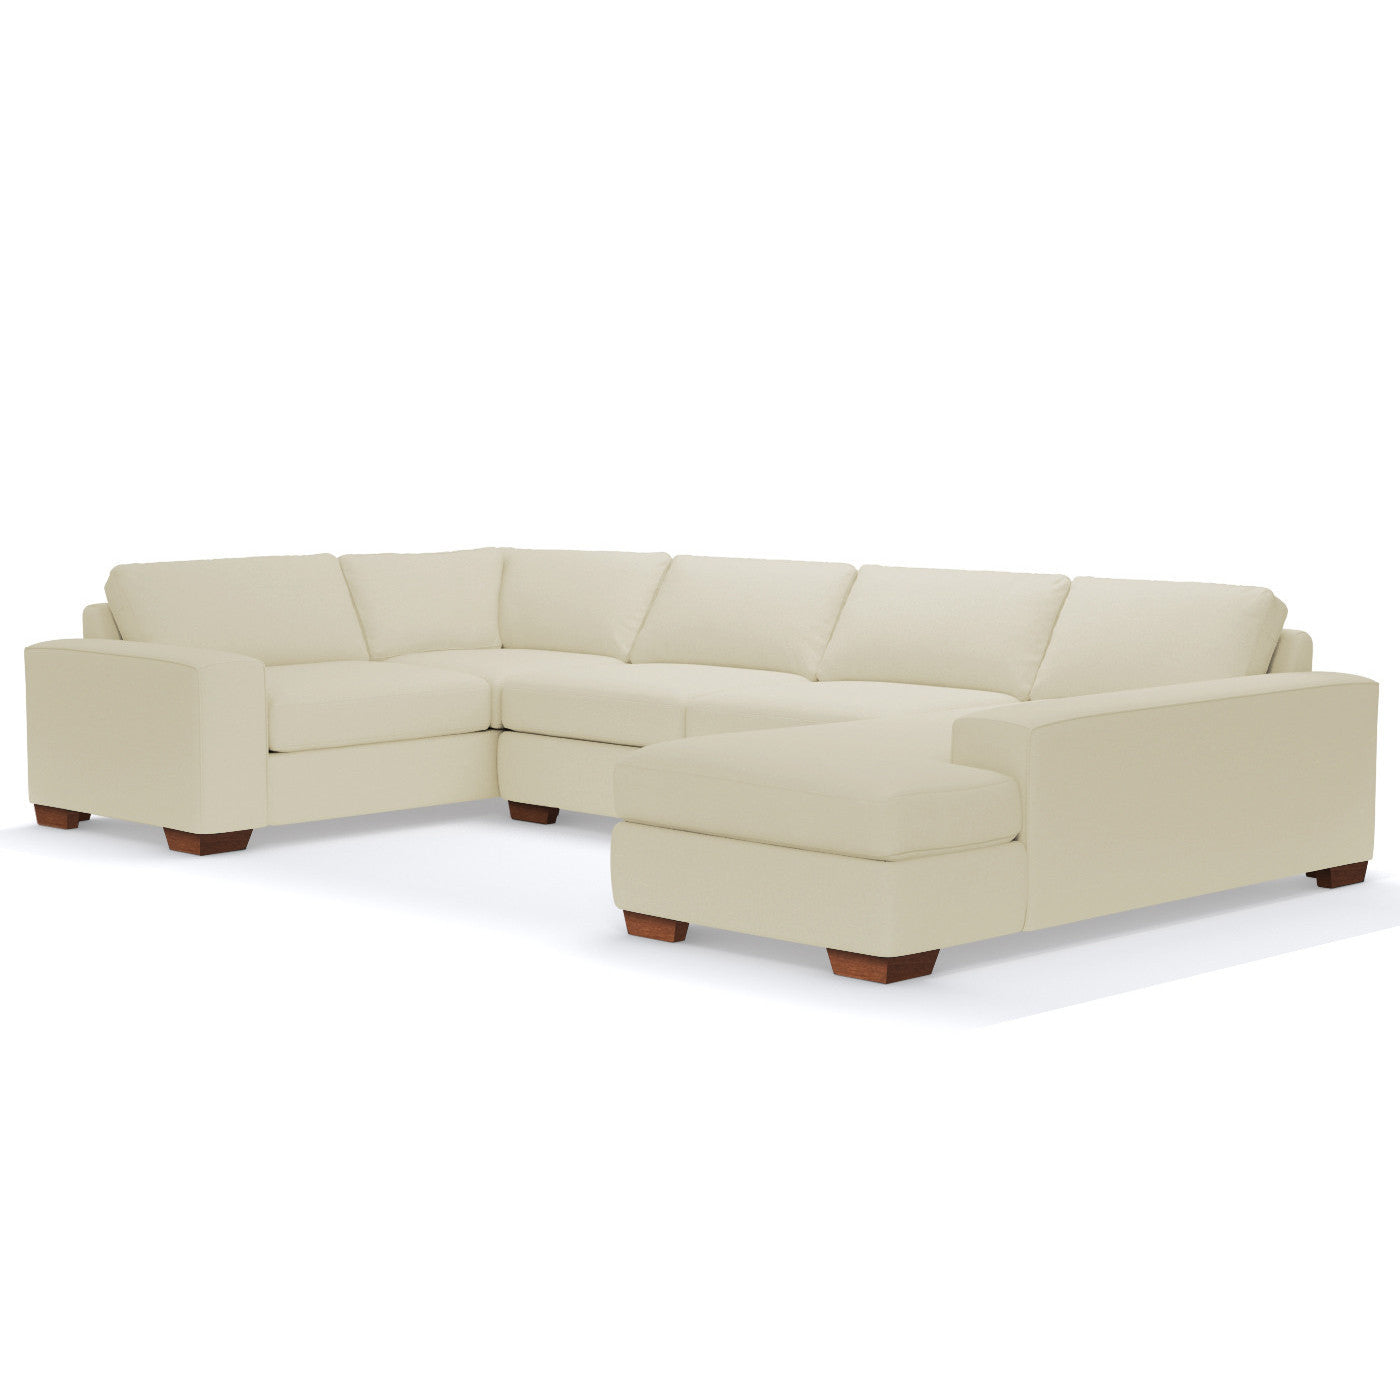 Melrose 3 Piece Modern Sectional Sofa – Apt2B